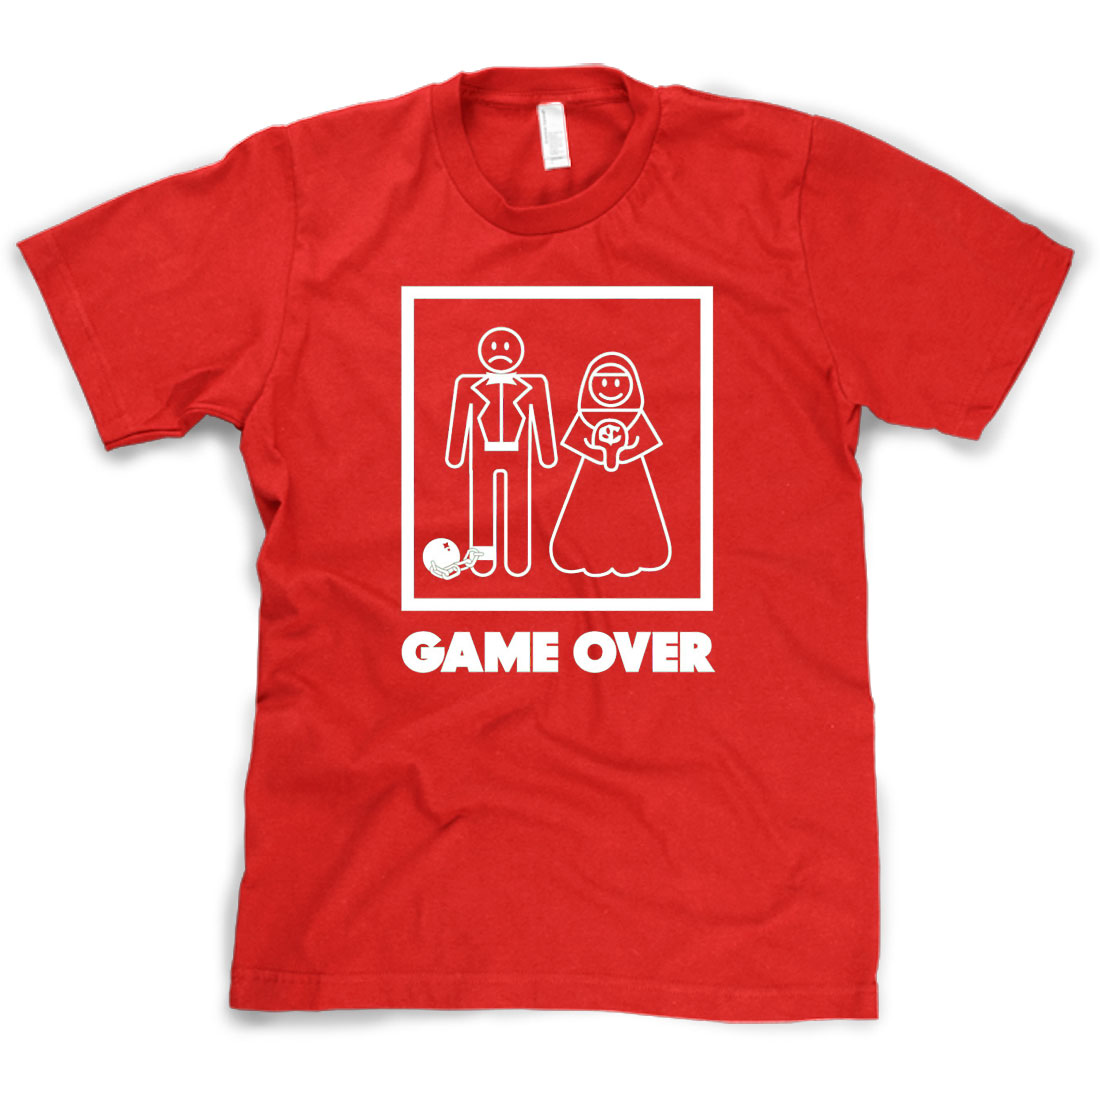 Game Over T-shirt - Funny Marriage Bride Groom Royal Tee ...